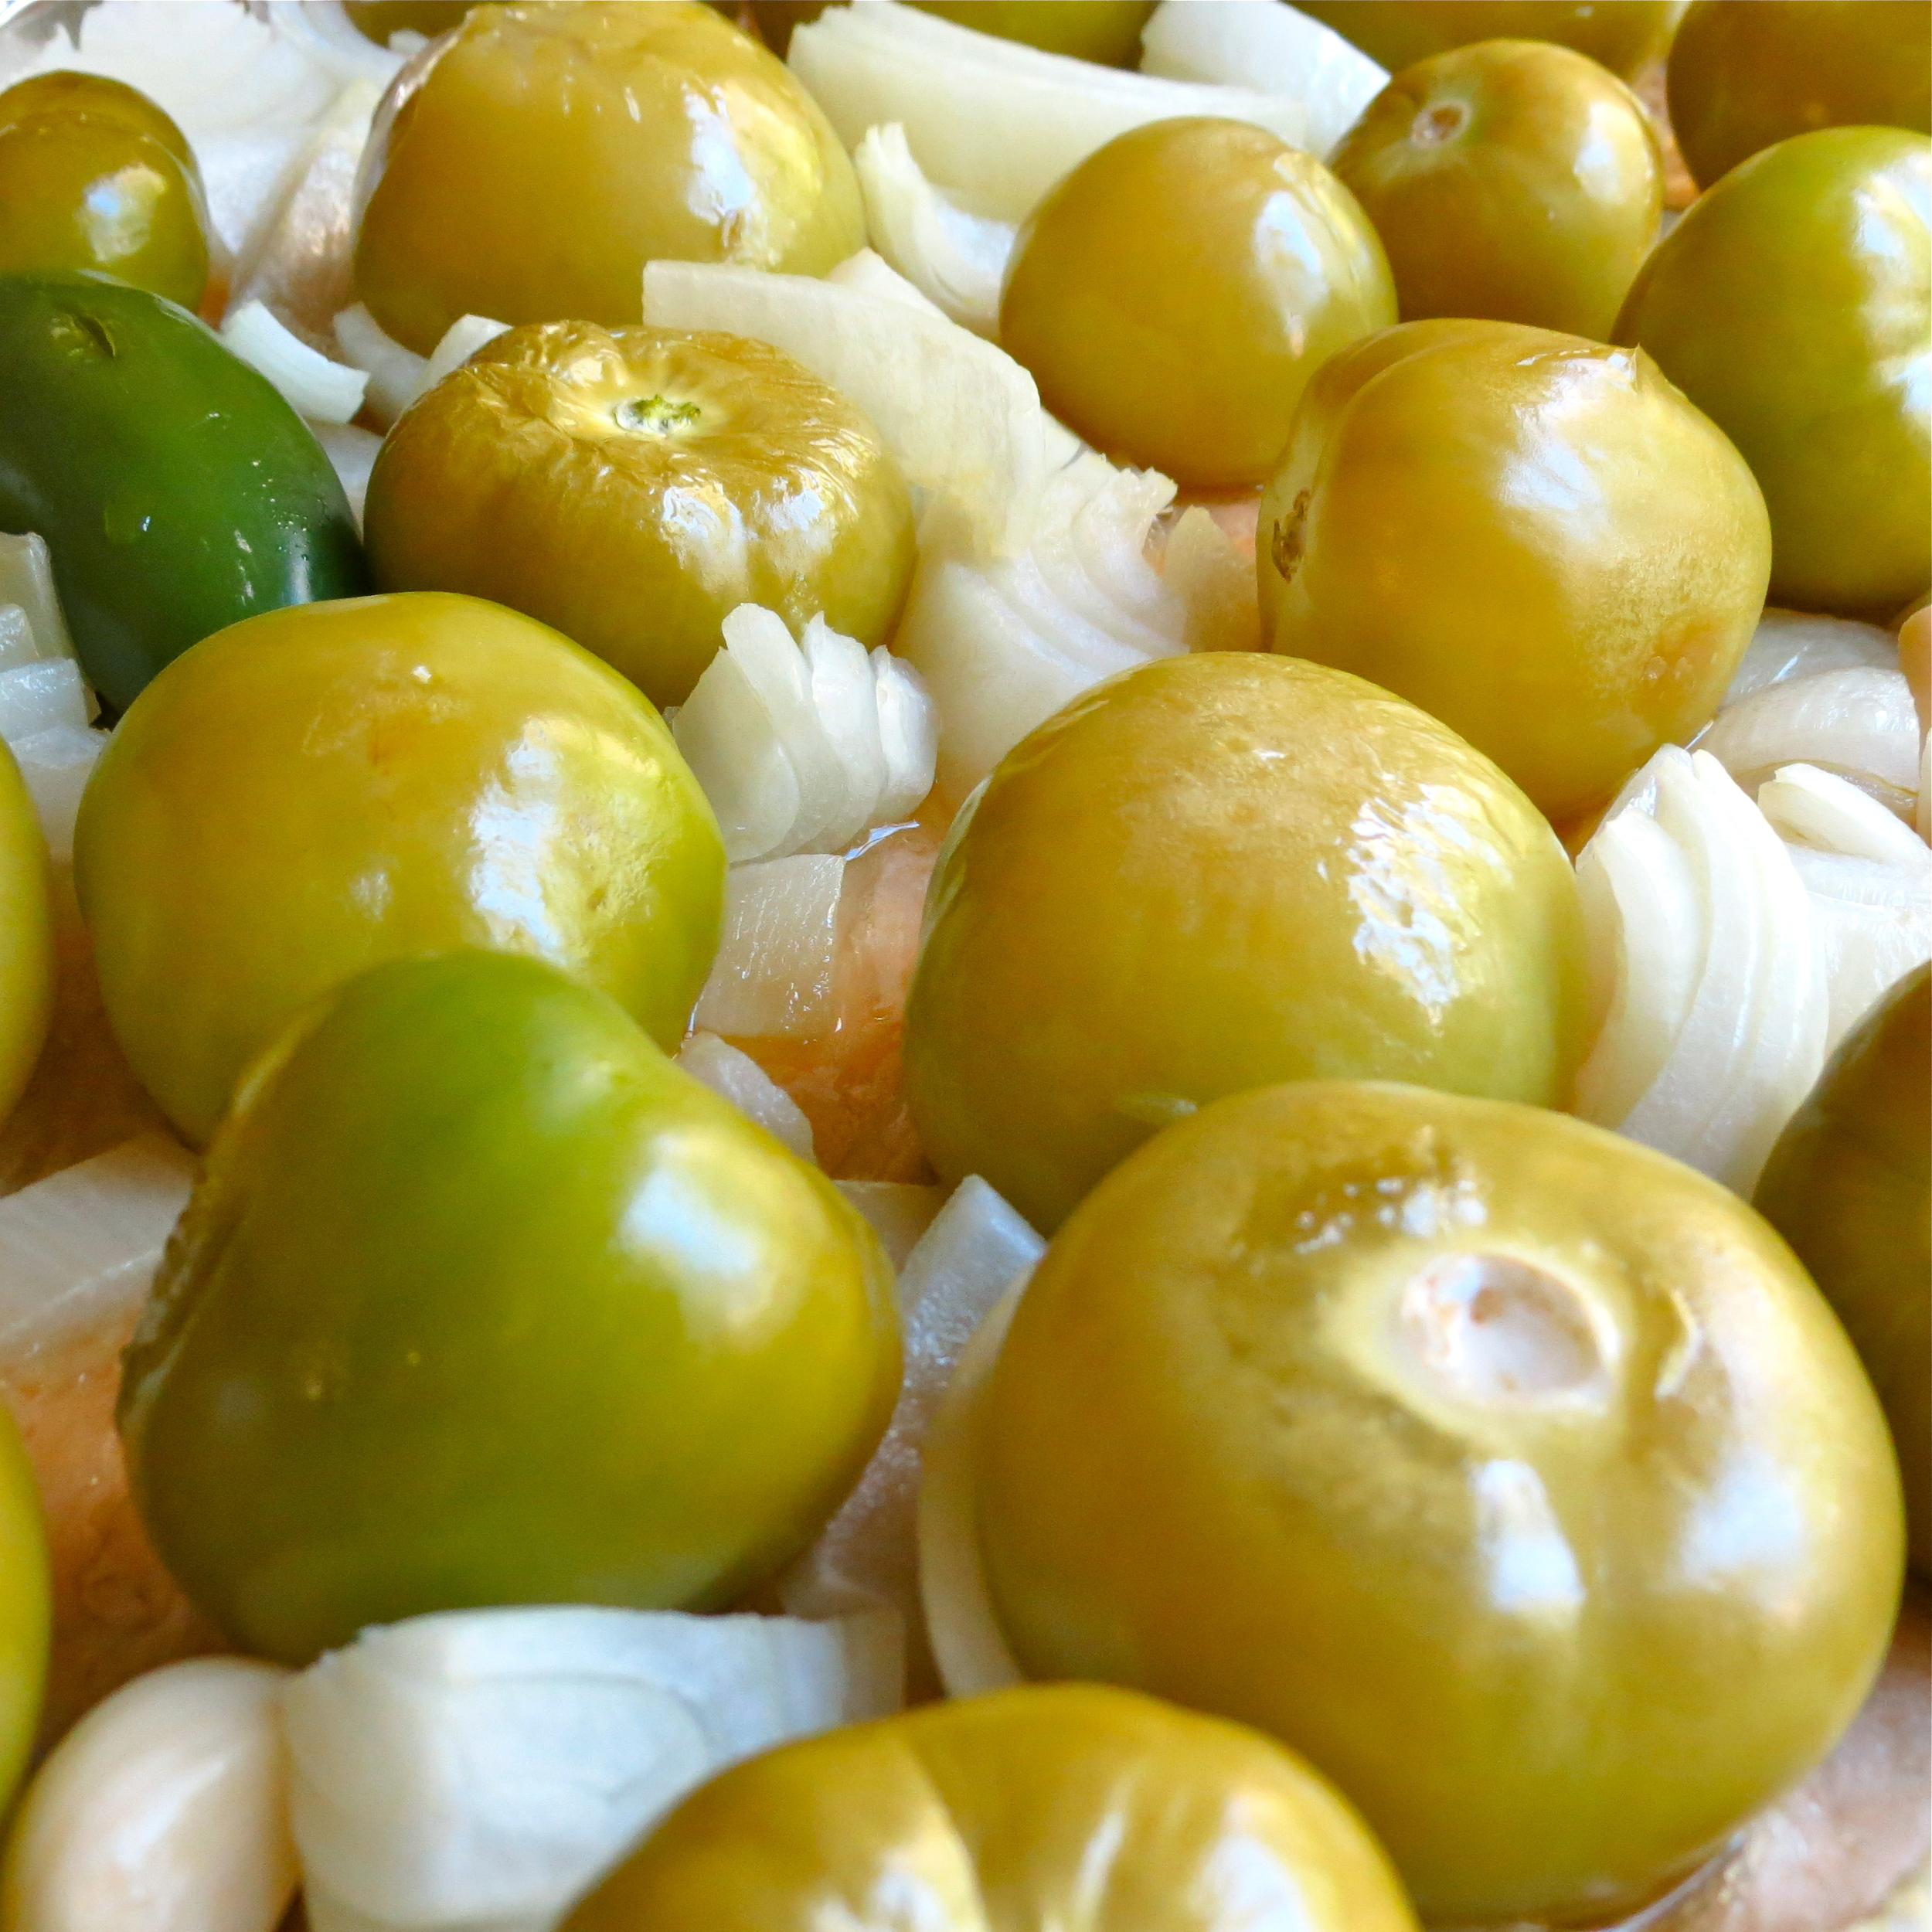 Roasted tomatillos are tender with light brown spots.